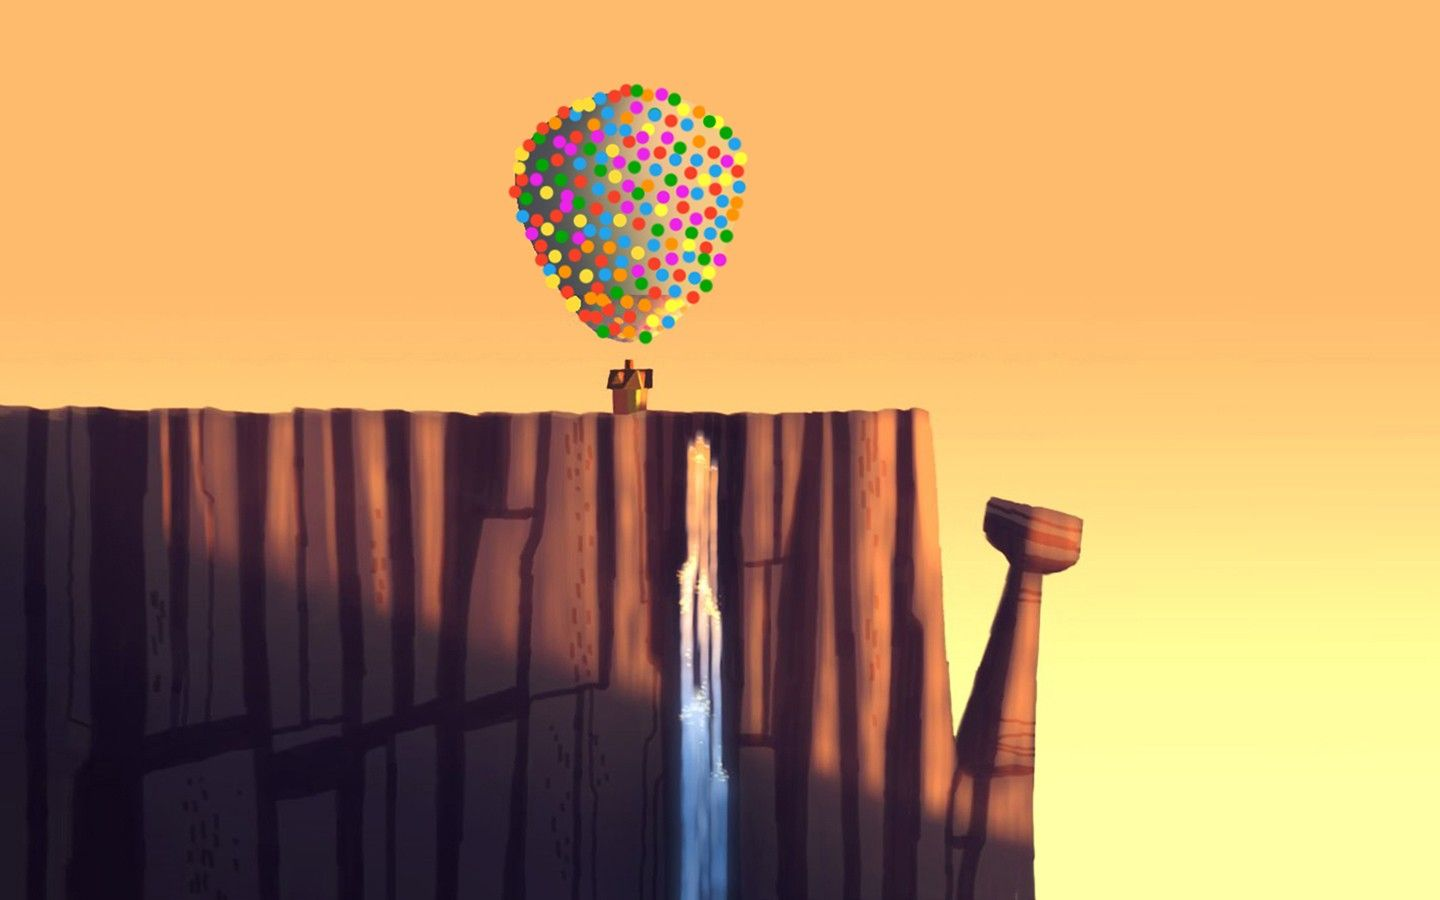 1000 Images About Up On Pinterest Disney Up Disney Pixar And